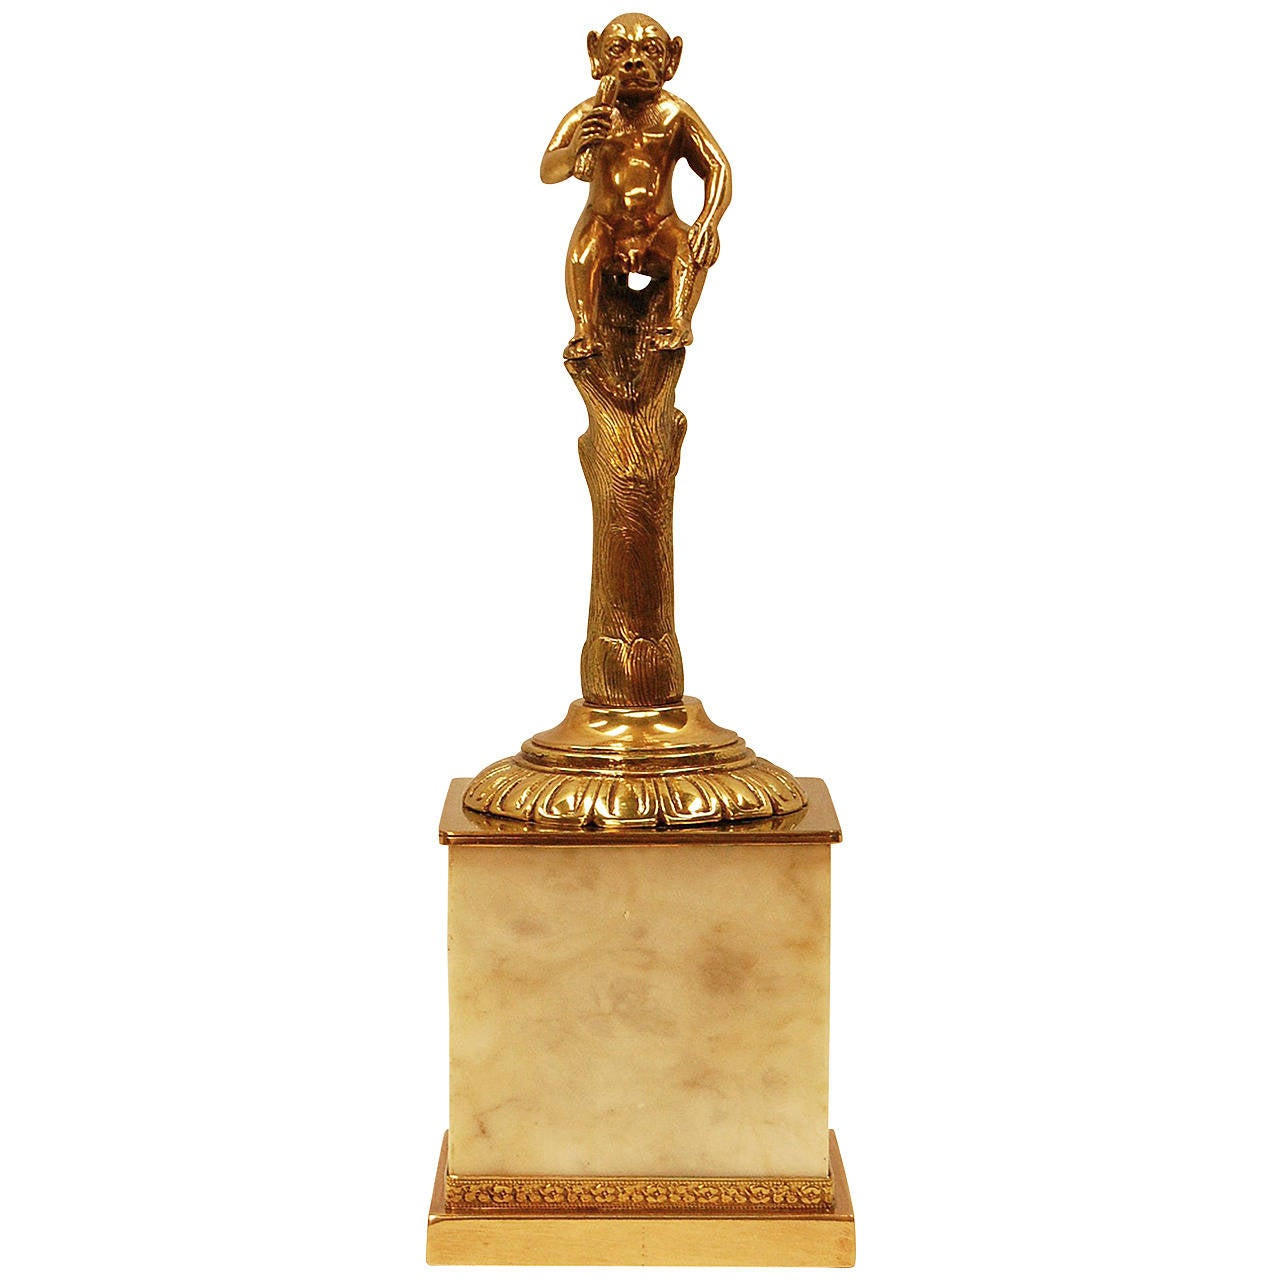 Early 19th Century Bronze Sculpture of a Monkey on Marble Plinth